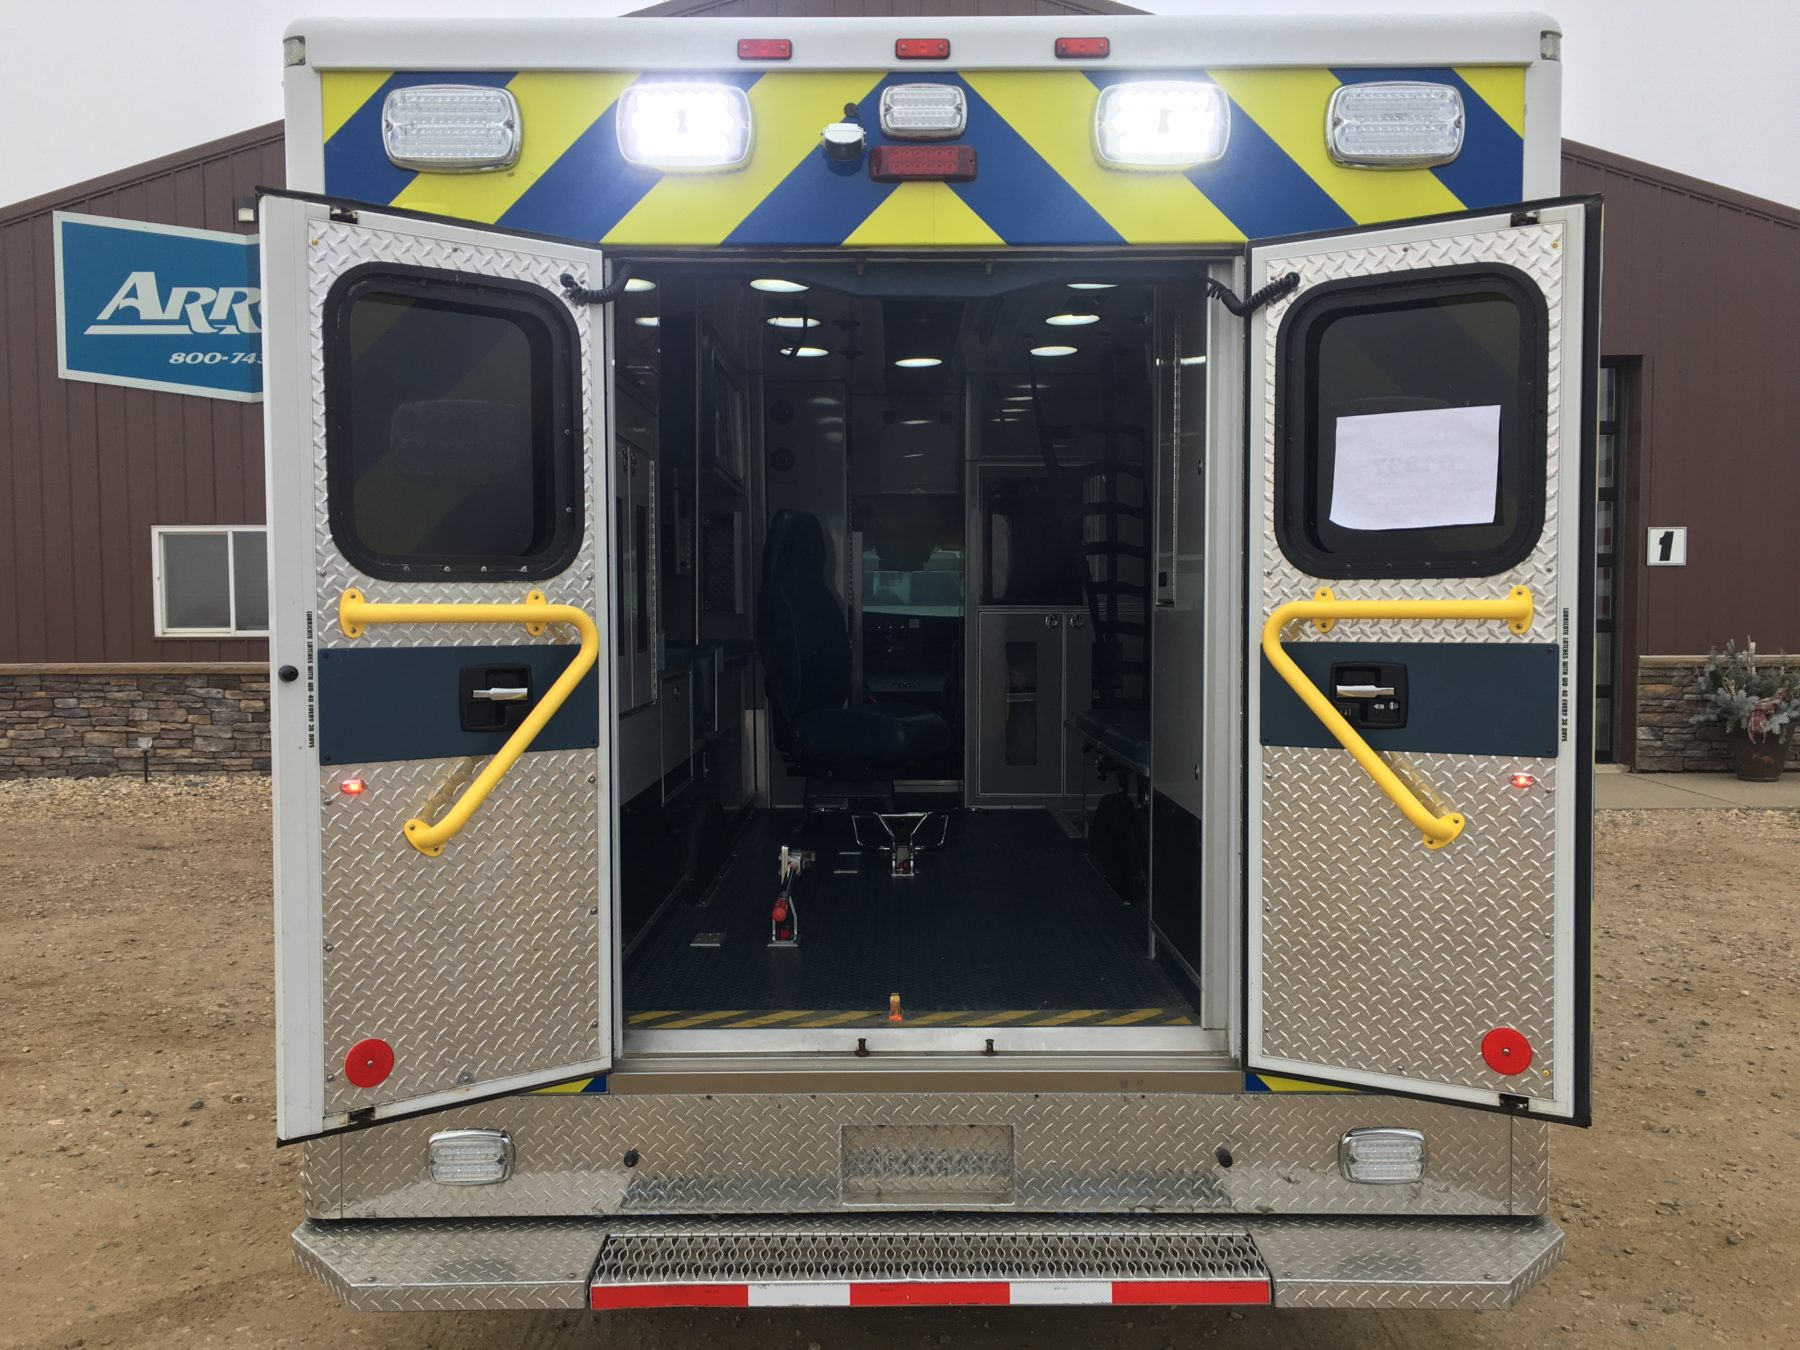 2012 Chevrolet G4500 Type 3 Ambulance For Sale – Picture 8